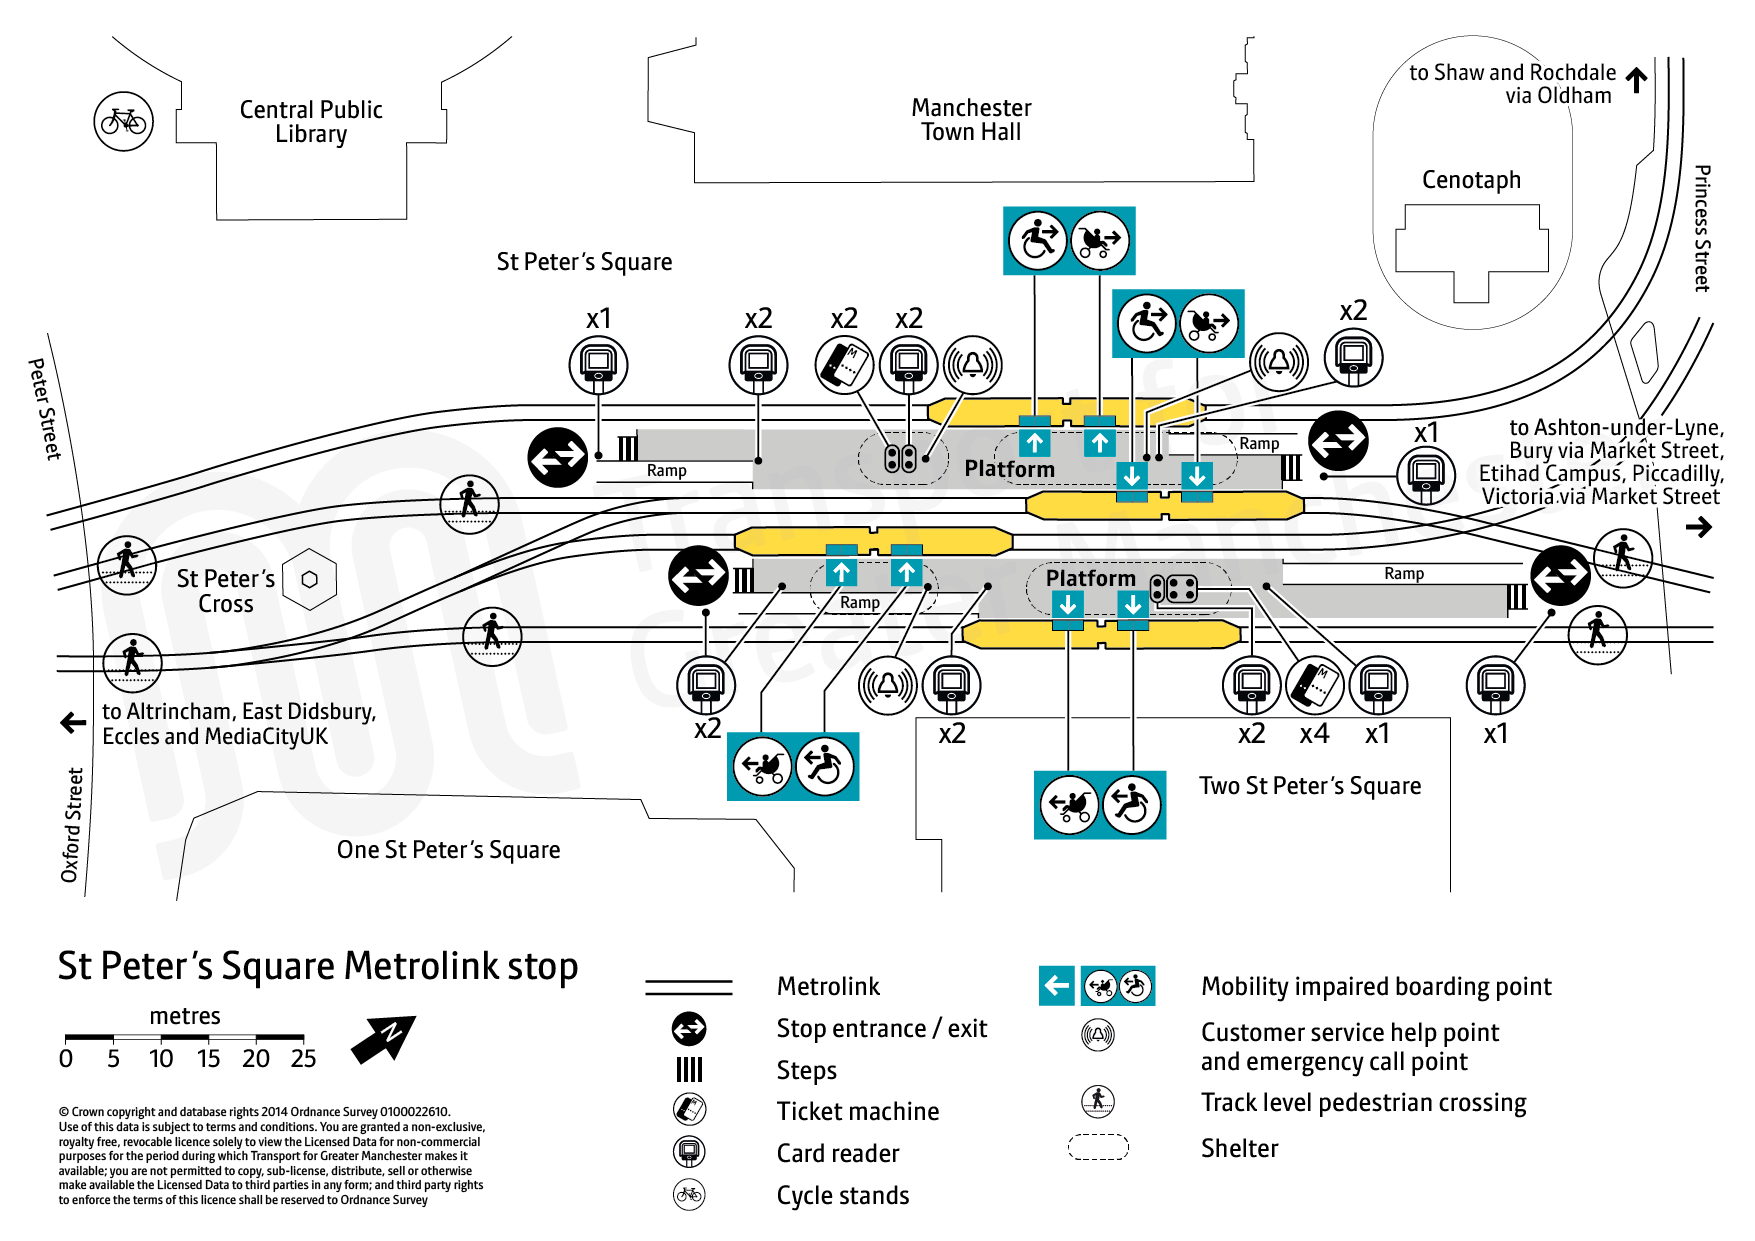 Stop map for St Peter's Square tram stop